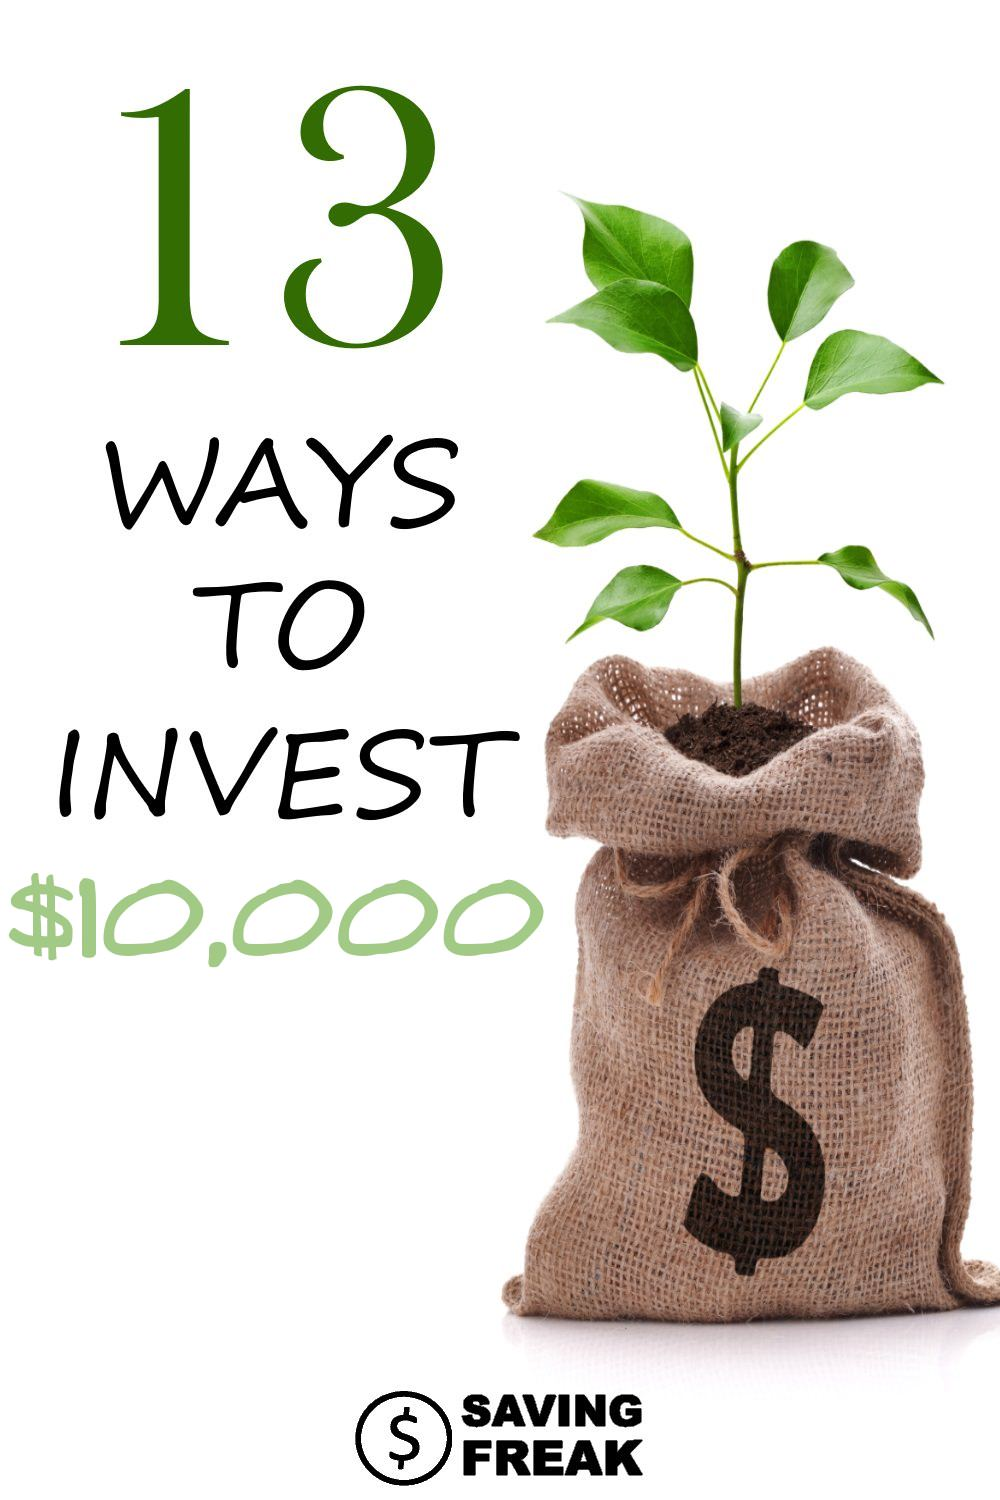 Figuring out how to invest 10,000 dollars can feel very difficult. The good news is that you have options and many of them are very easy to use. This guide will run down many of the choices for your $10k investments and give you insight into how I would make that investment.